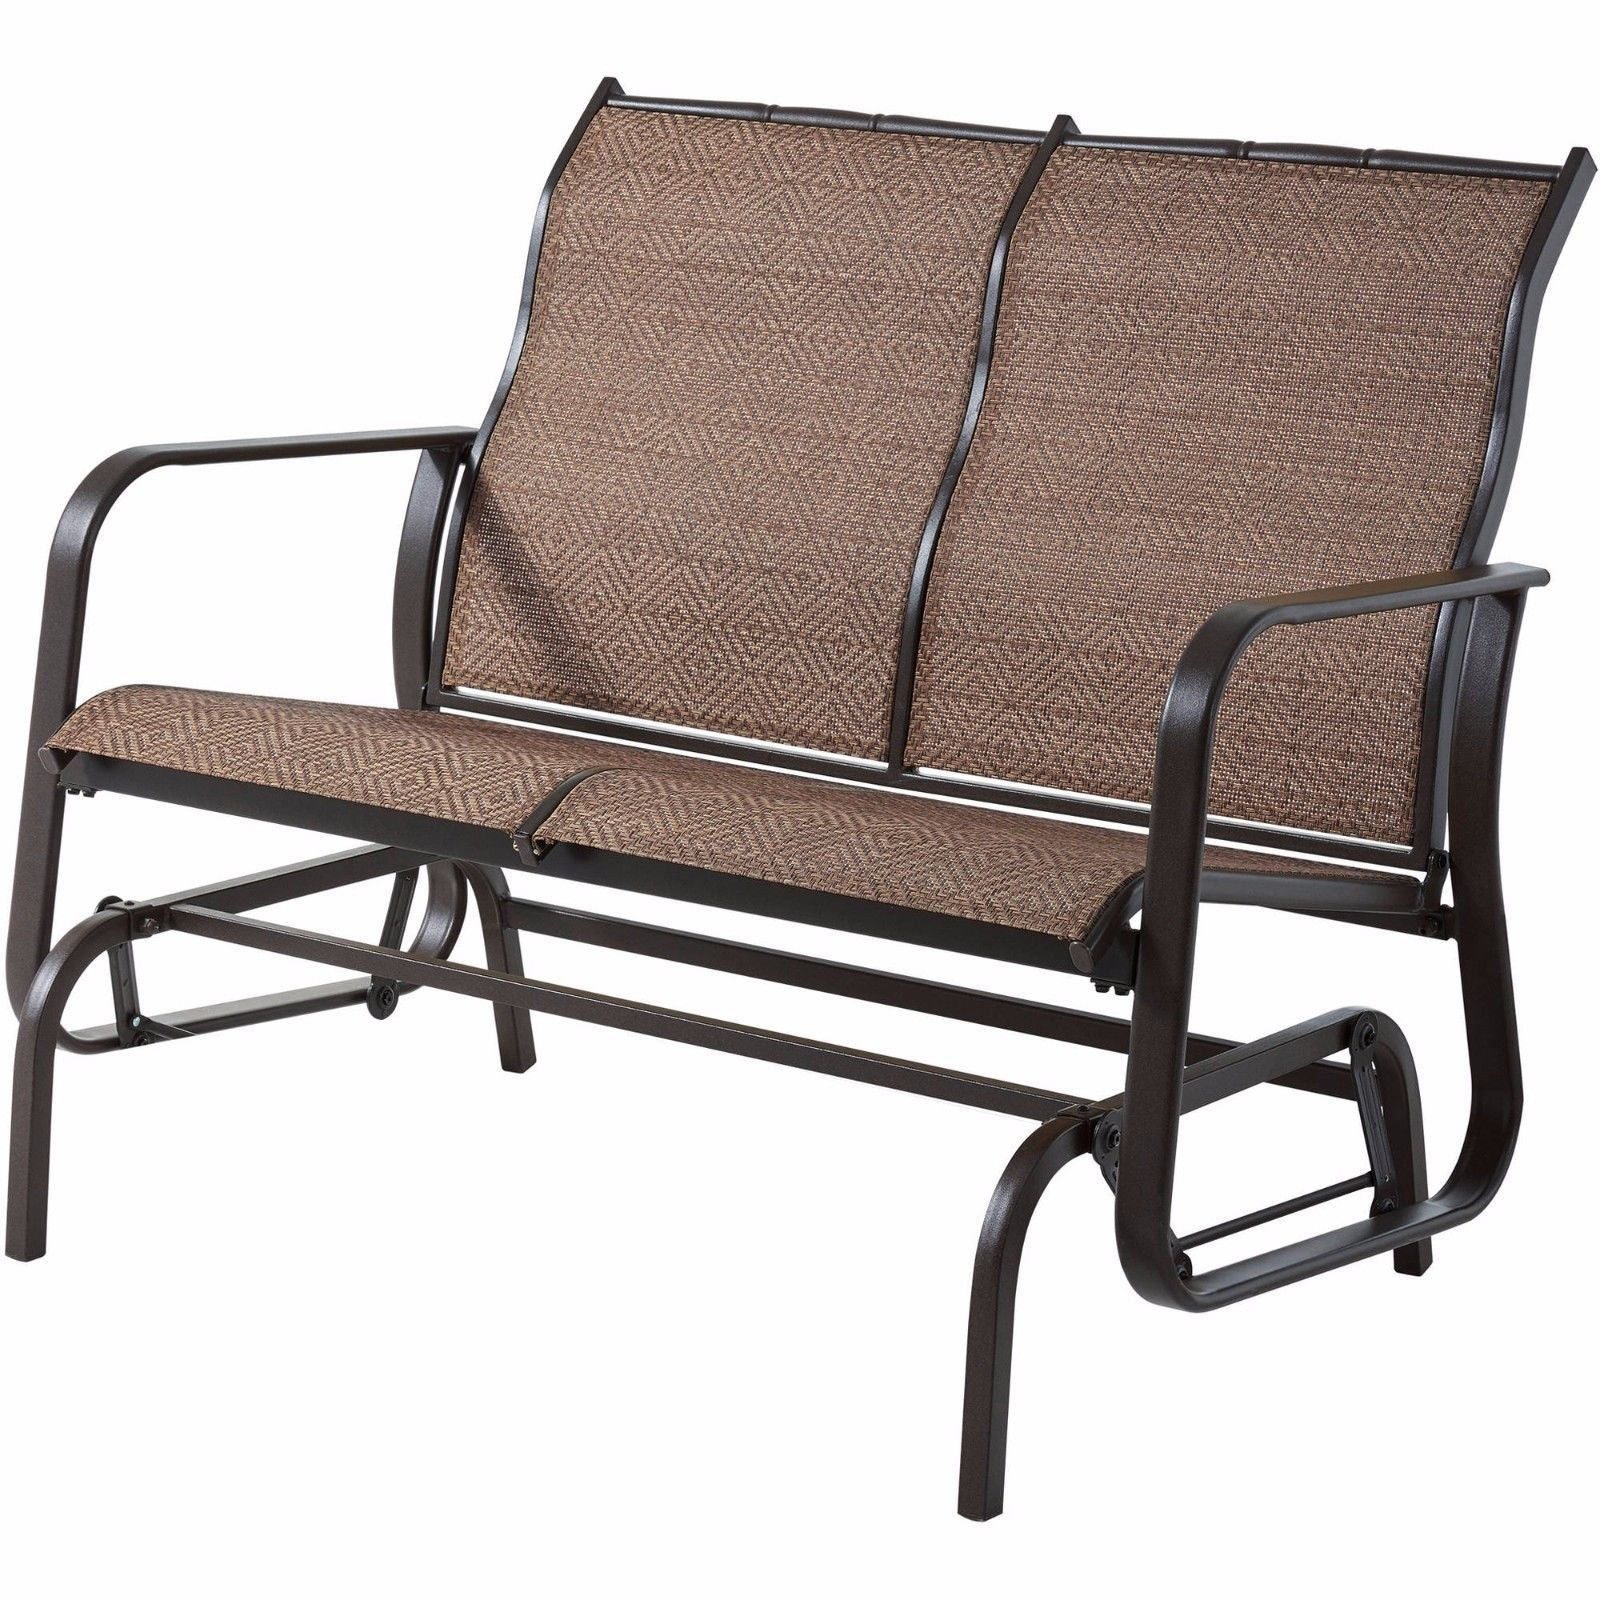 Outdoor patio loveseat glider brown 2 seat sling furniture pool patio garden furniture sets Garden loveseat